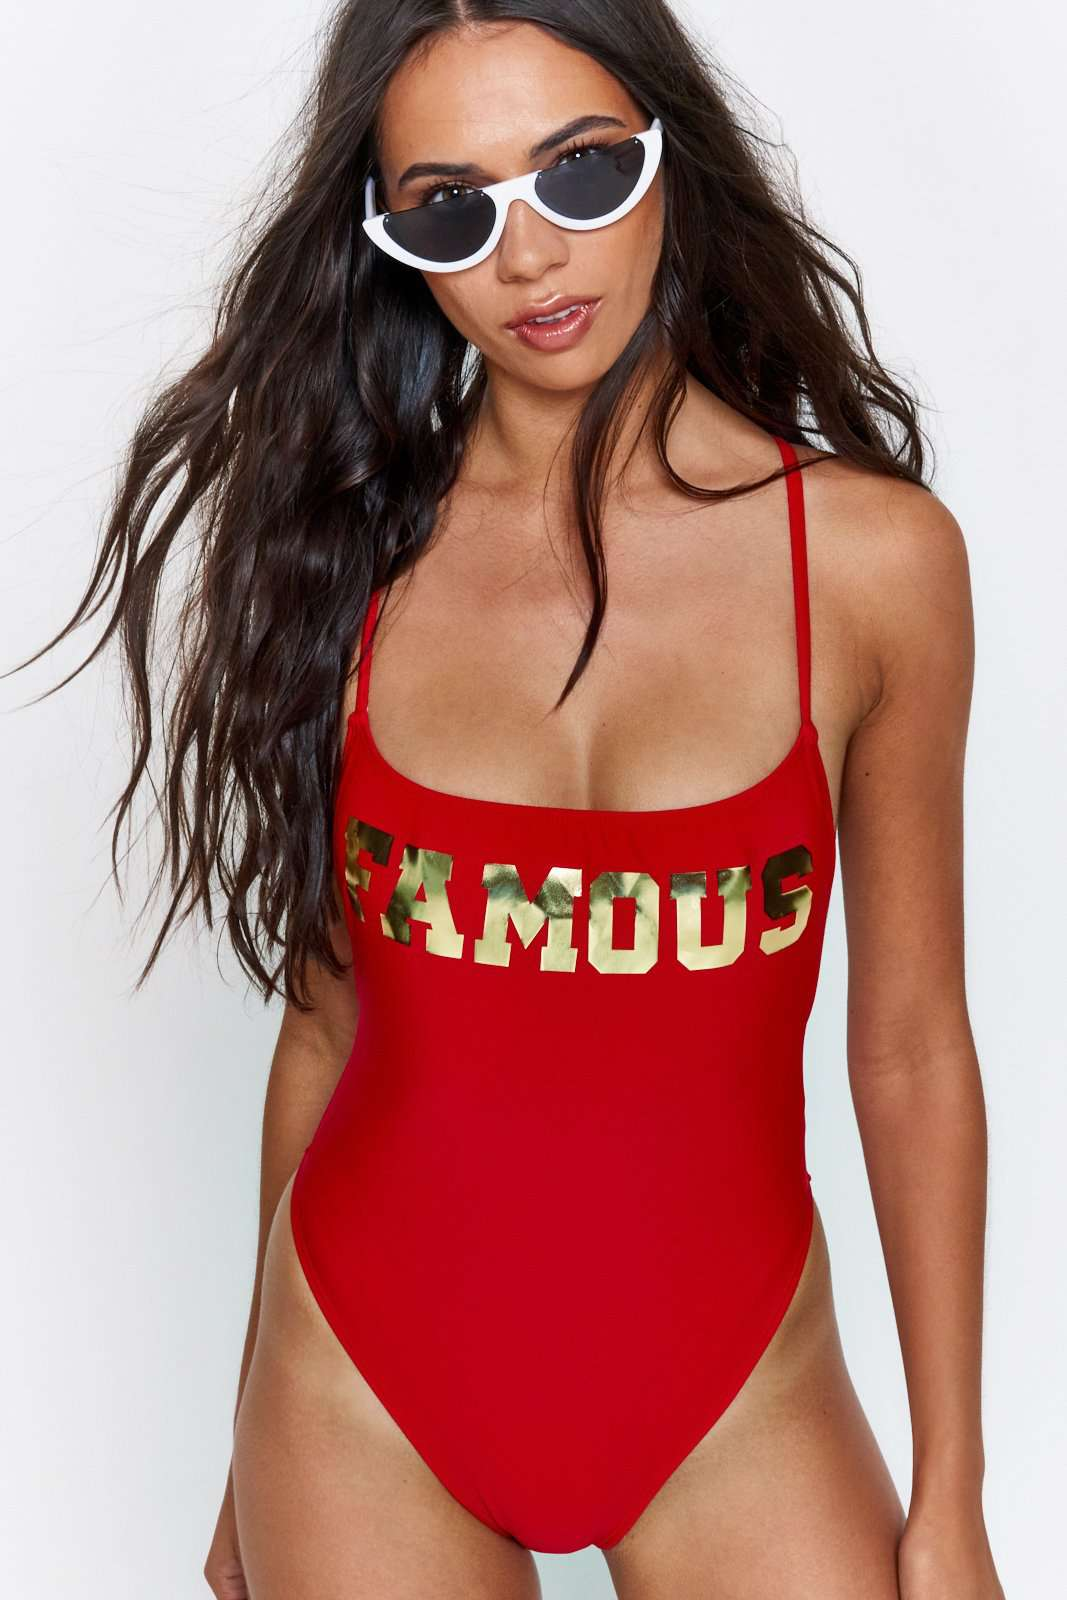 Red Cami Swimsuit With Gold Famous Slogan